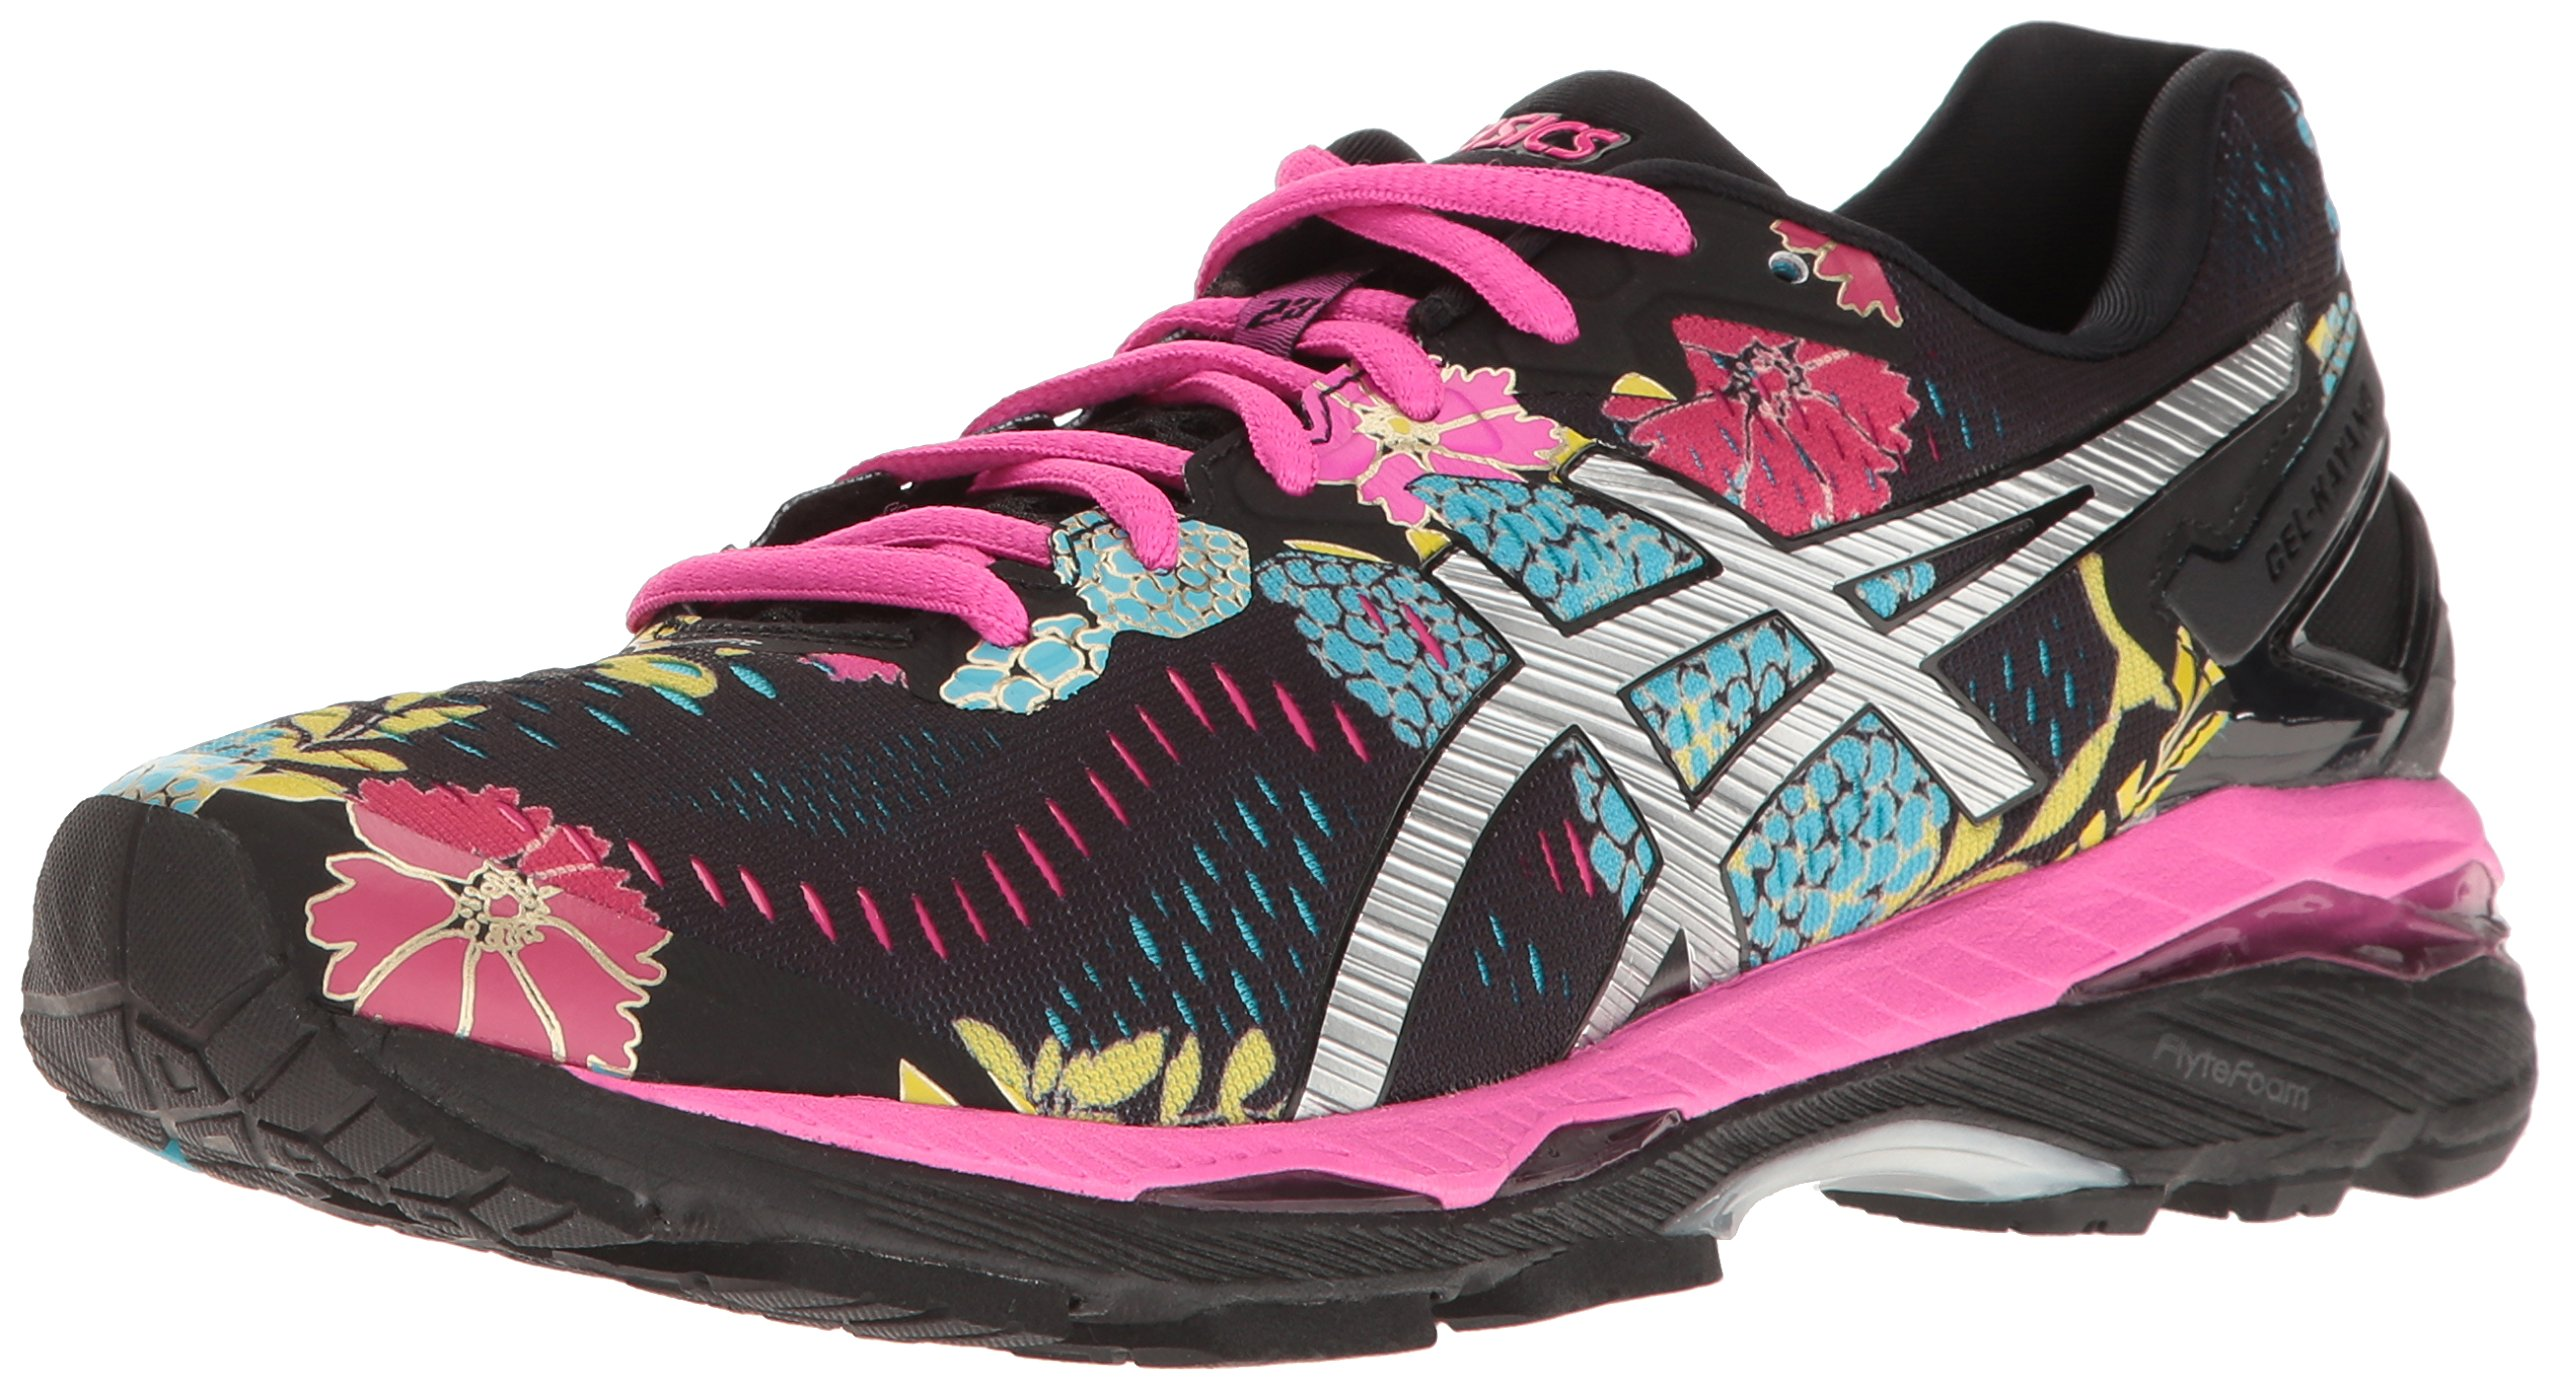 ASICS Women's Gel-Kayano 23 Running Shoe, Black/Silver/Pink Glow, 8.5 M US